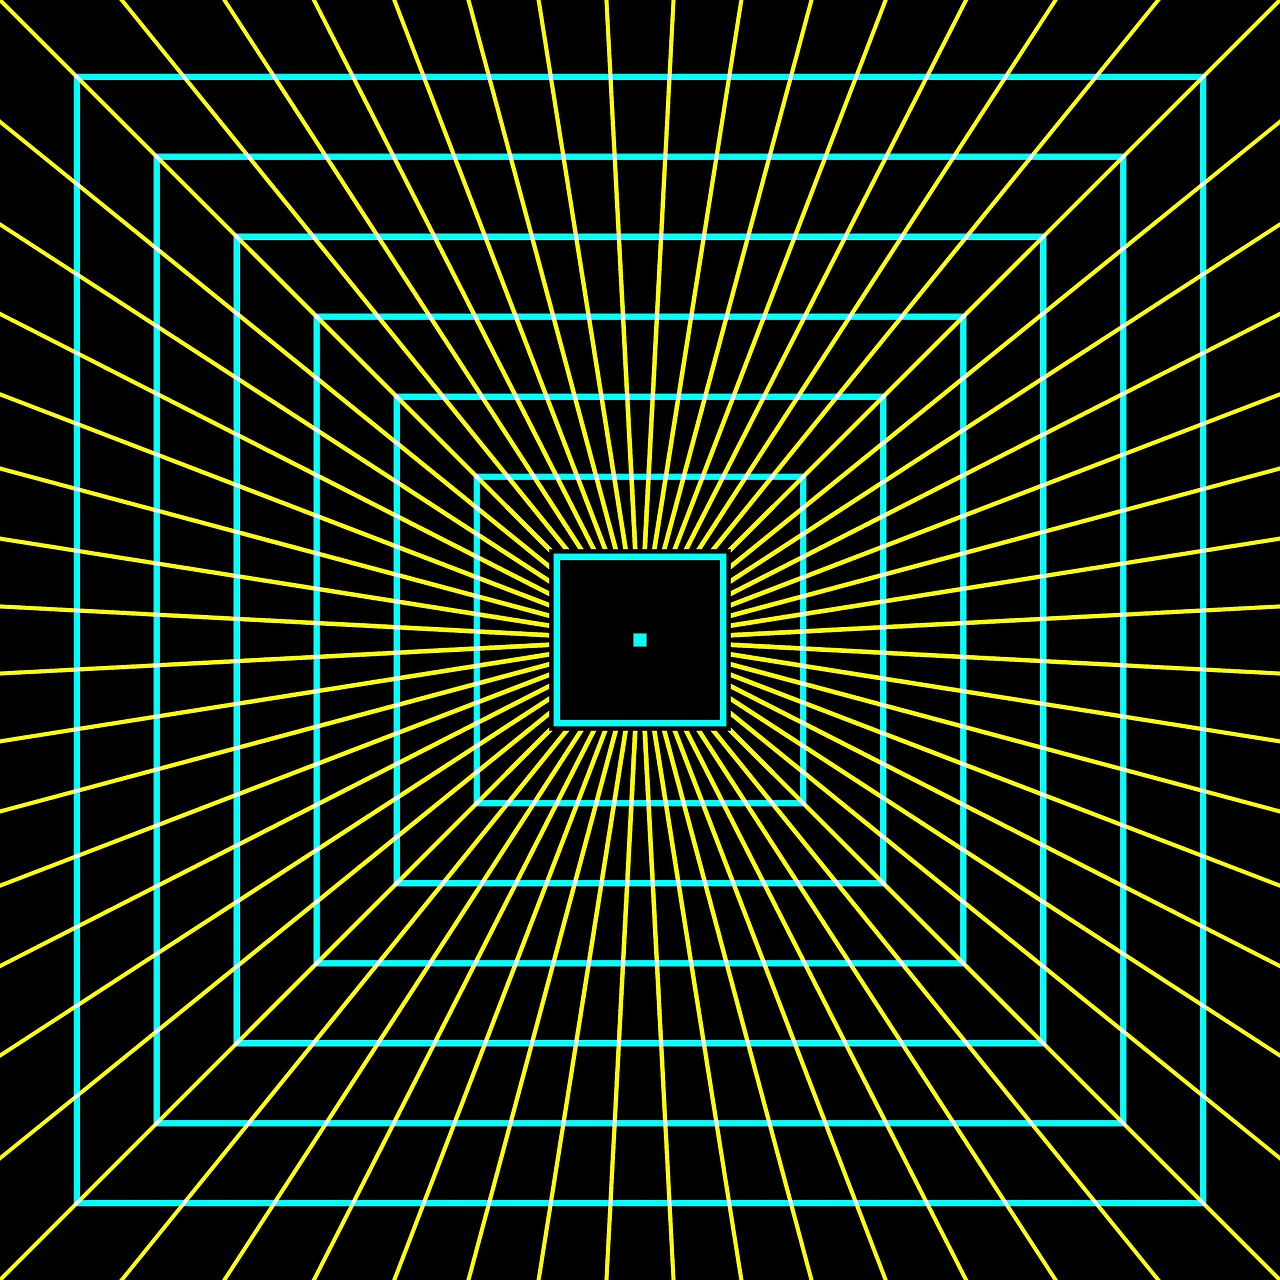 crosshair,visor,focal point,center,concentration,sightings,focus,outline,black,white,arrangement,middle,central,free pictures, free photos, free images, royalty free, free illustrations, public domain